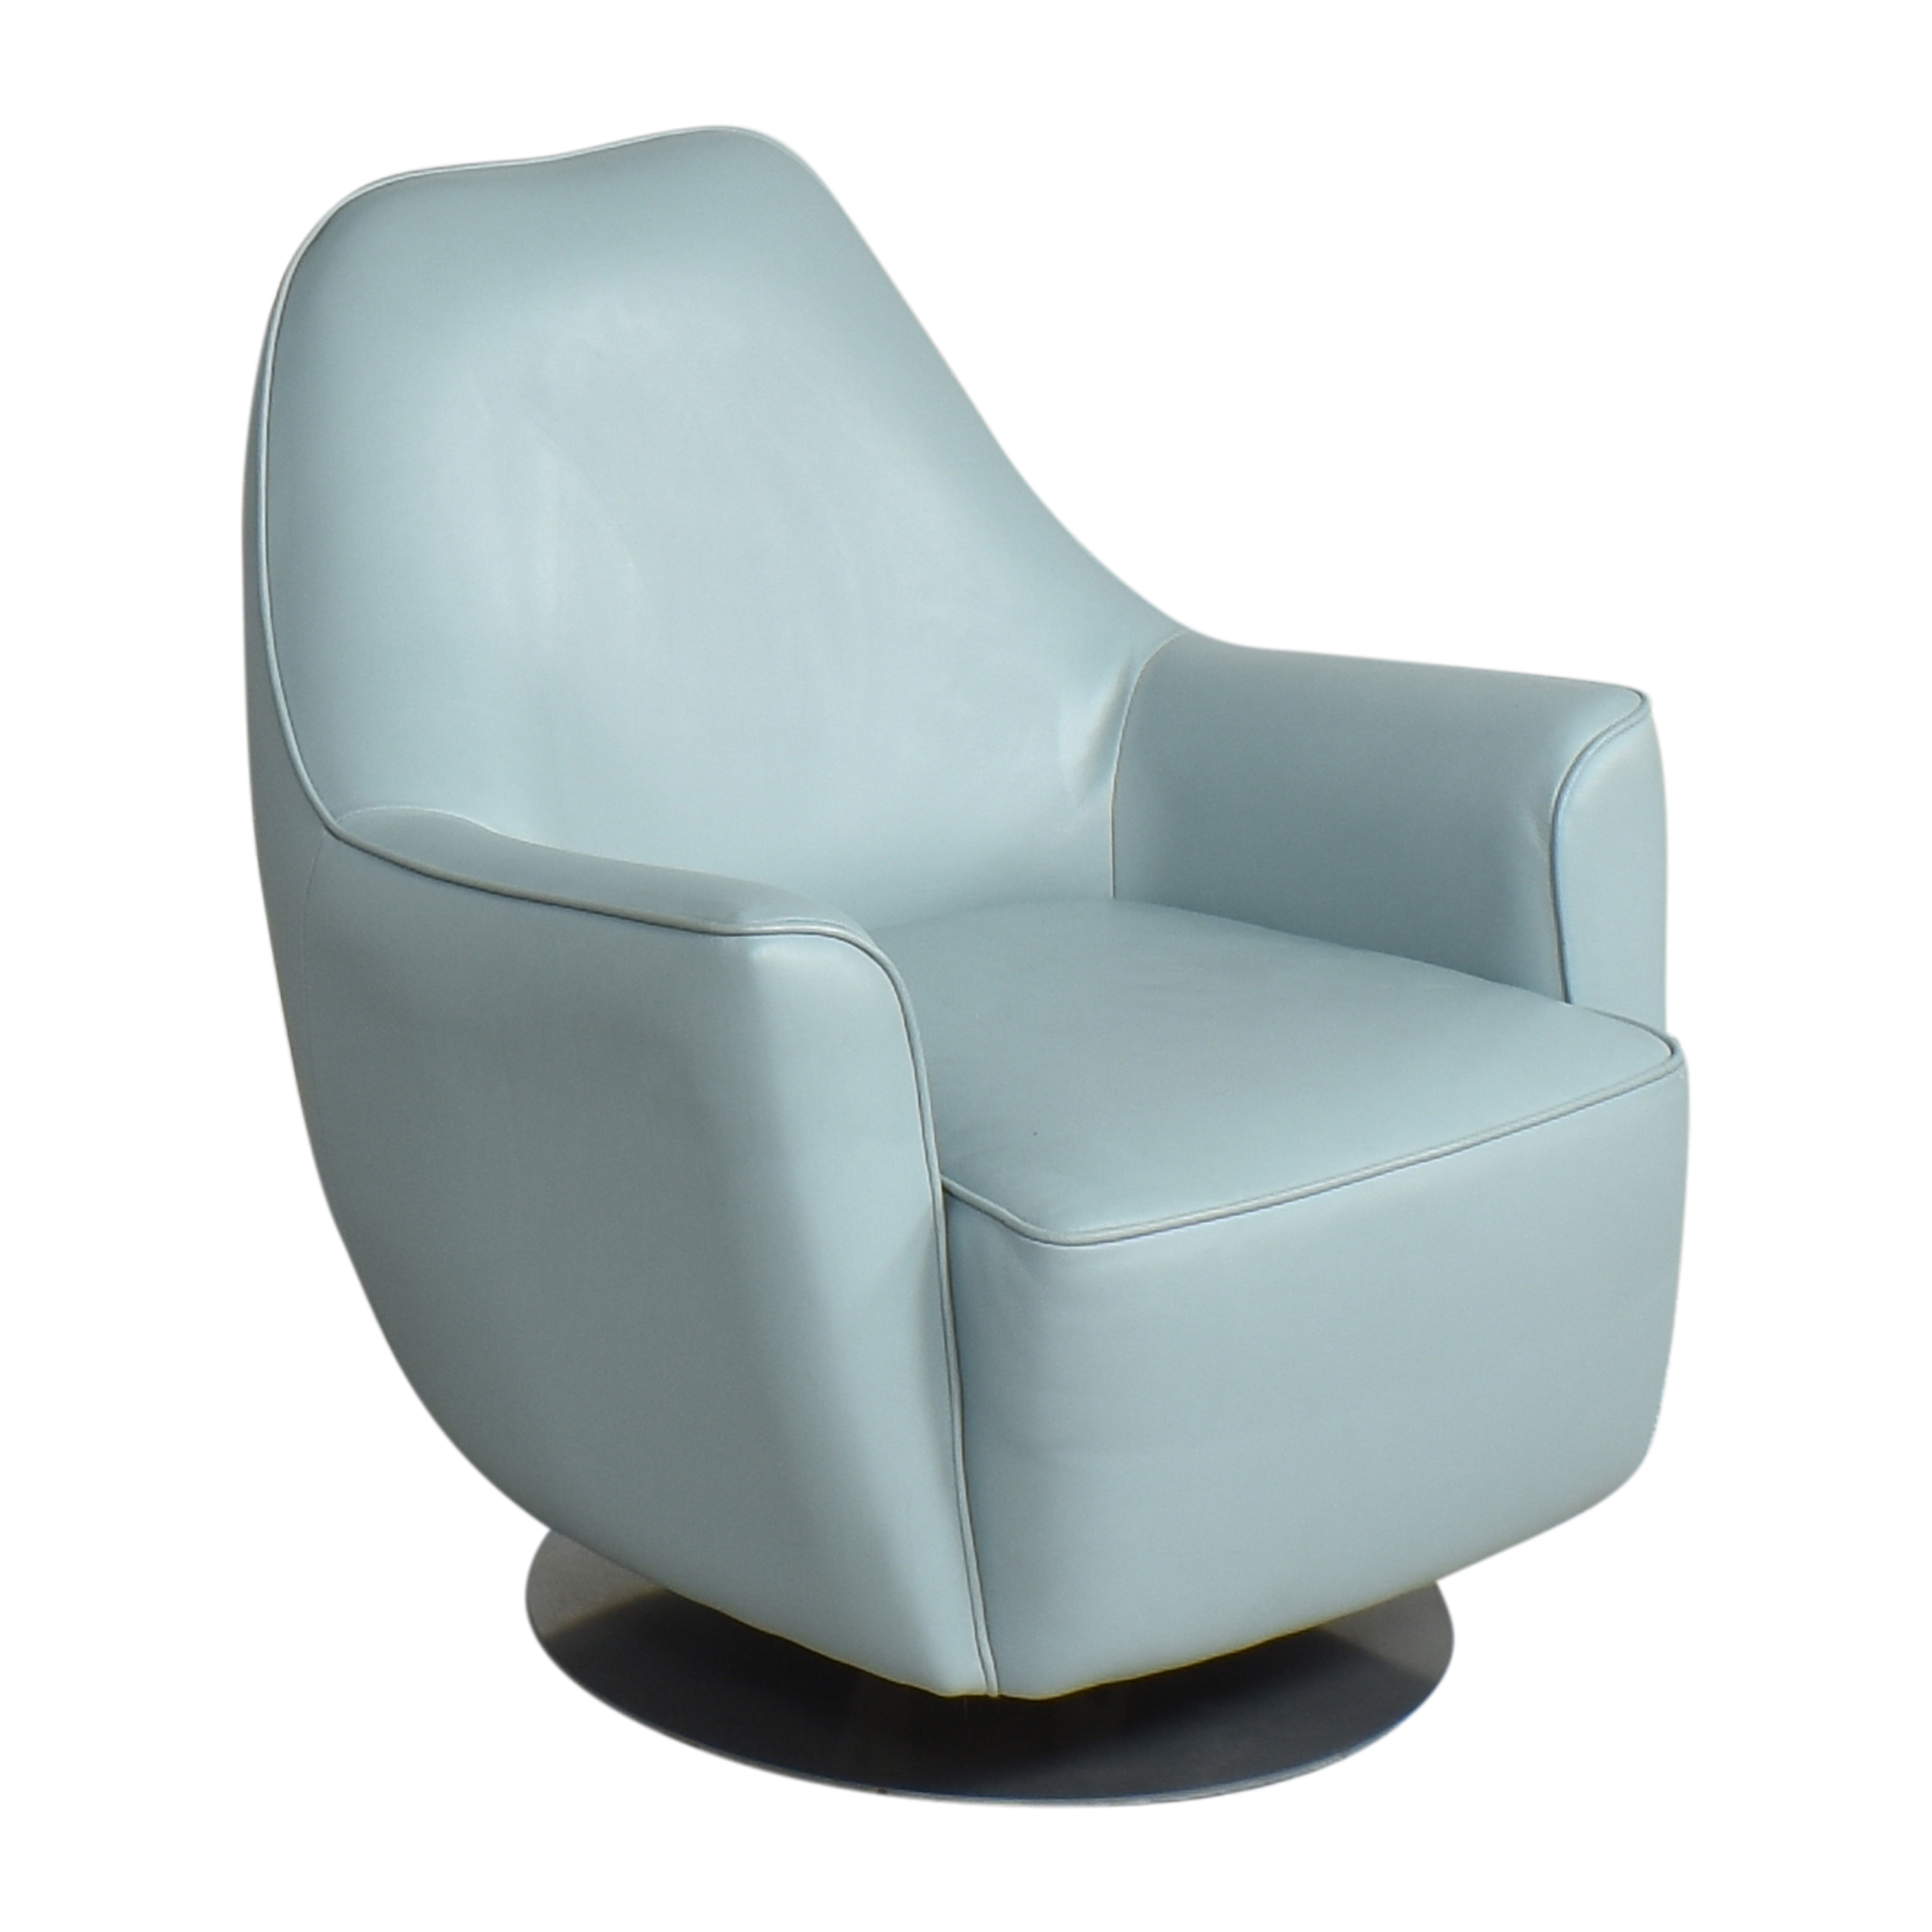 buy Room & Board Modern Swivel Chair Room & Board Accent Chairs